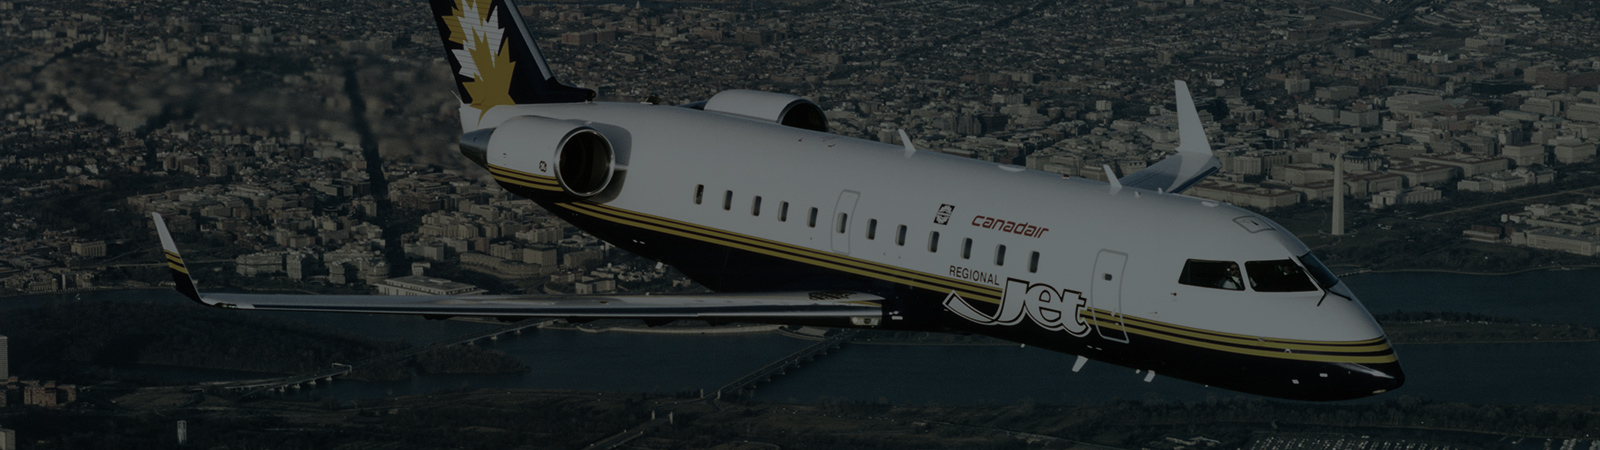 MHIRJ regional jet flying over a city